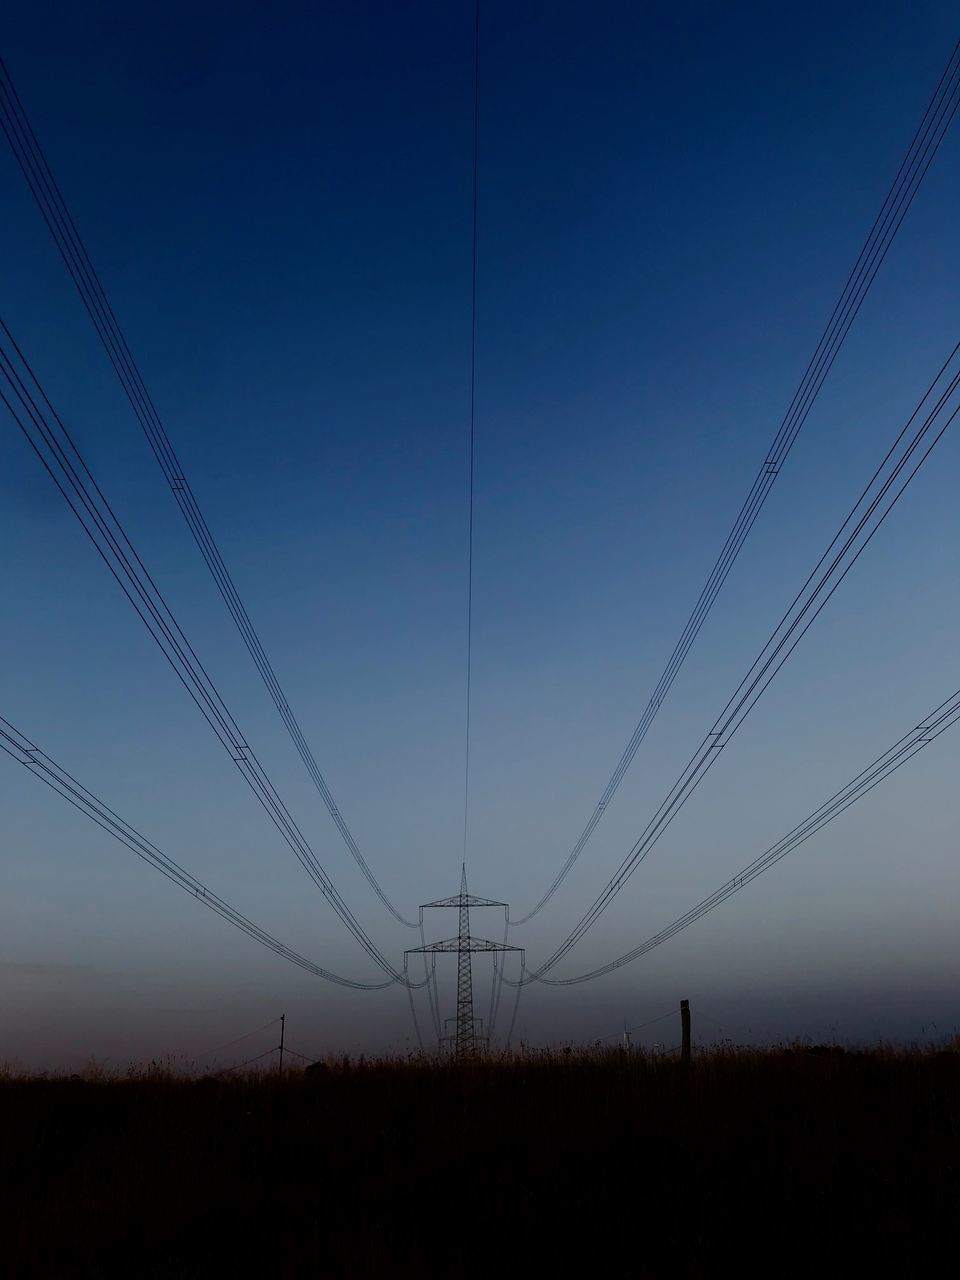 ELECTRICITY PYLONS ON FIELD AGAINST CLEAR SKY